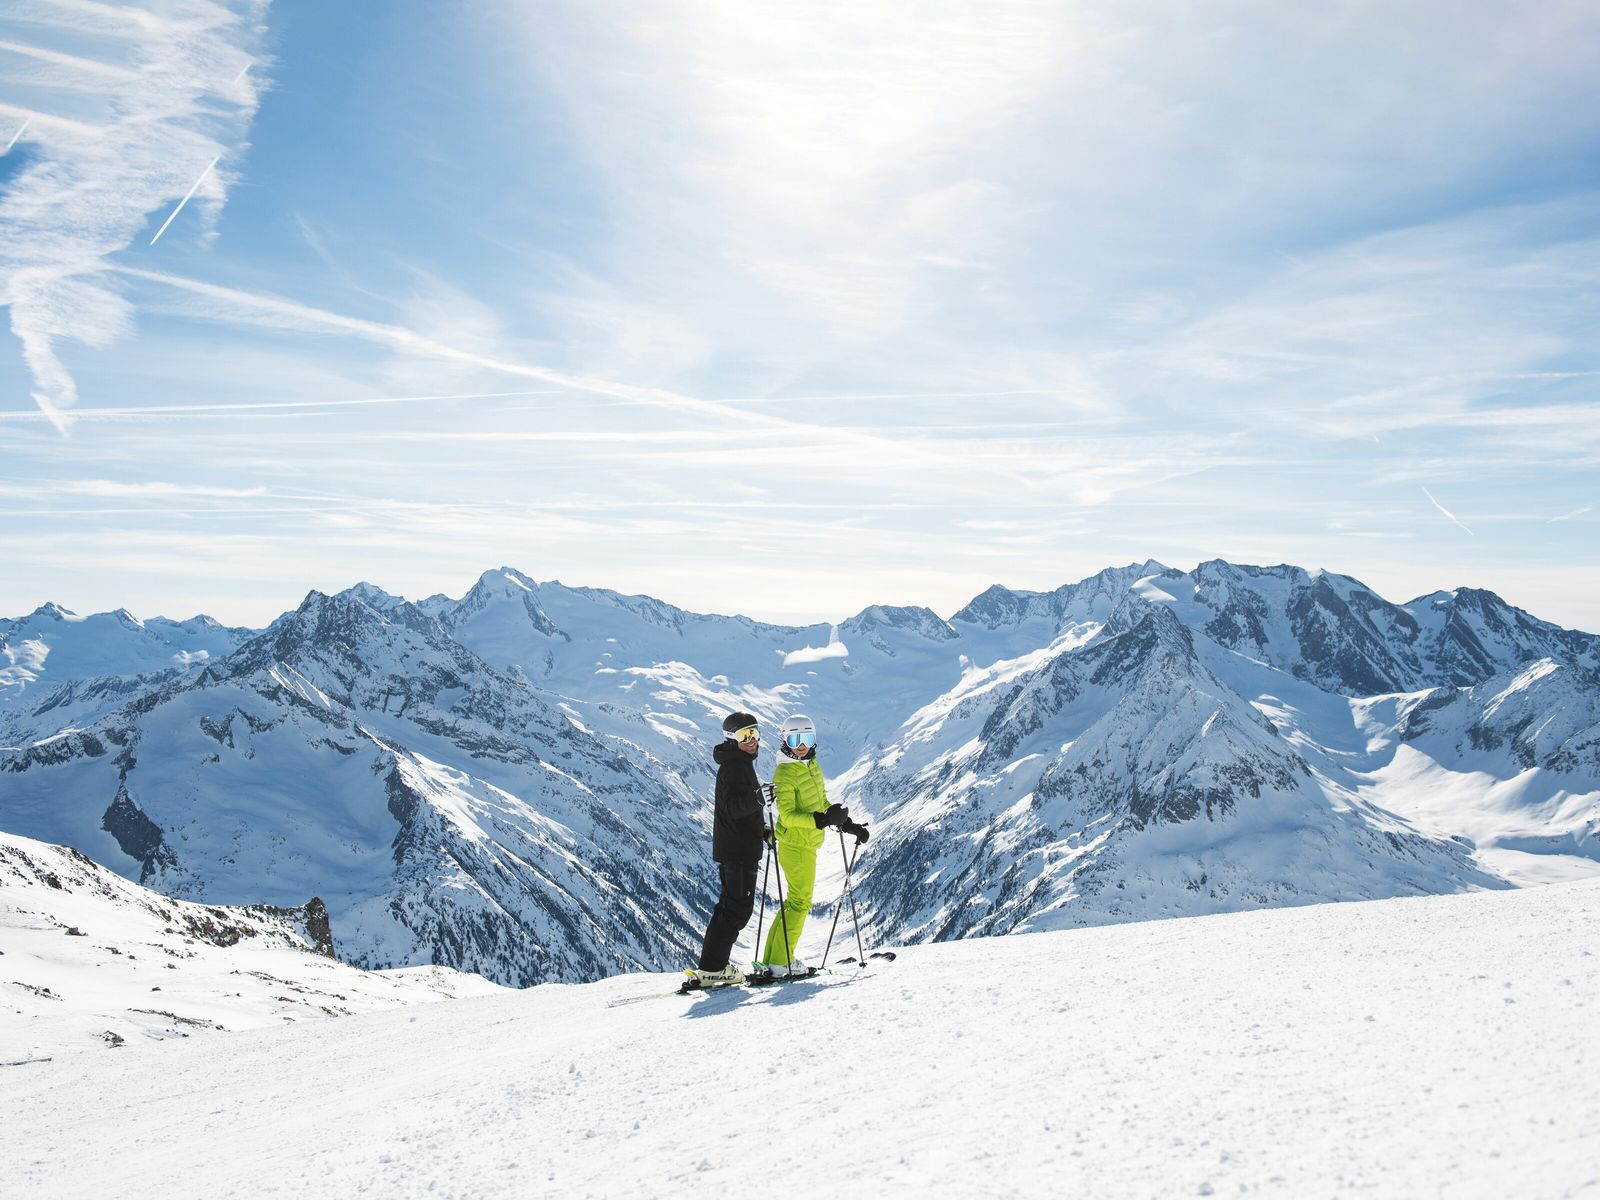 The Hintertuxer Glacier is Austria's only skiing area that promises snow 365 days a year.